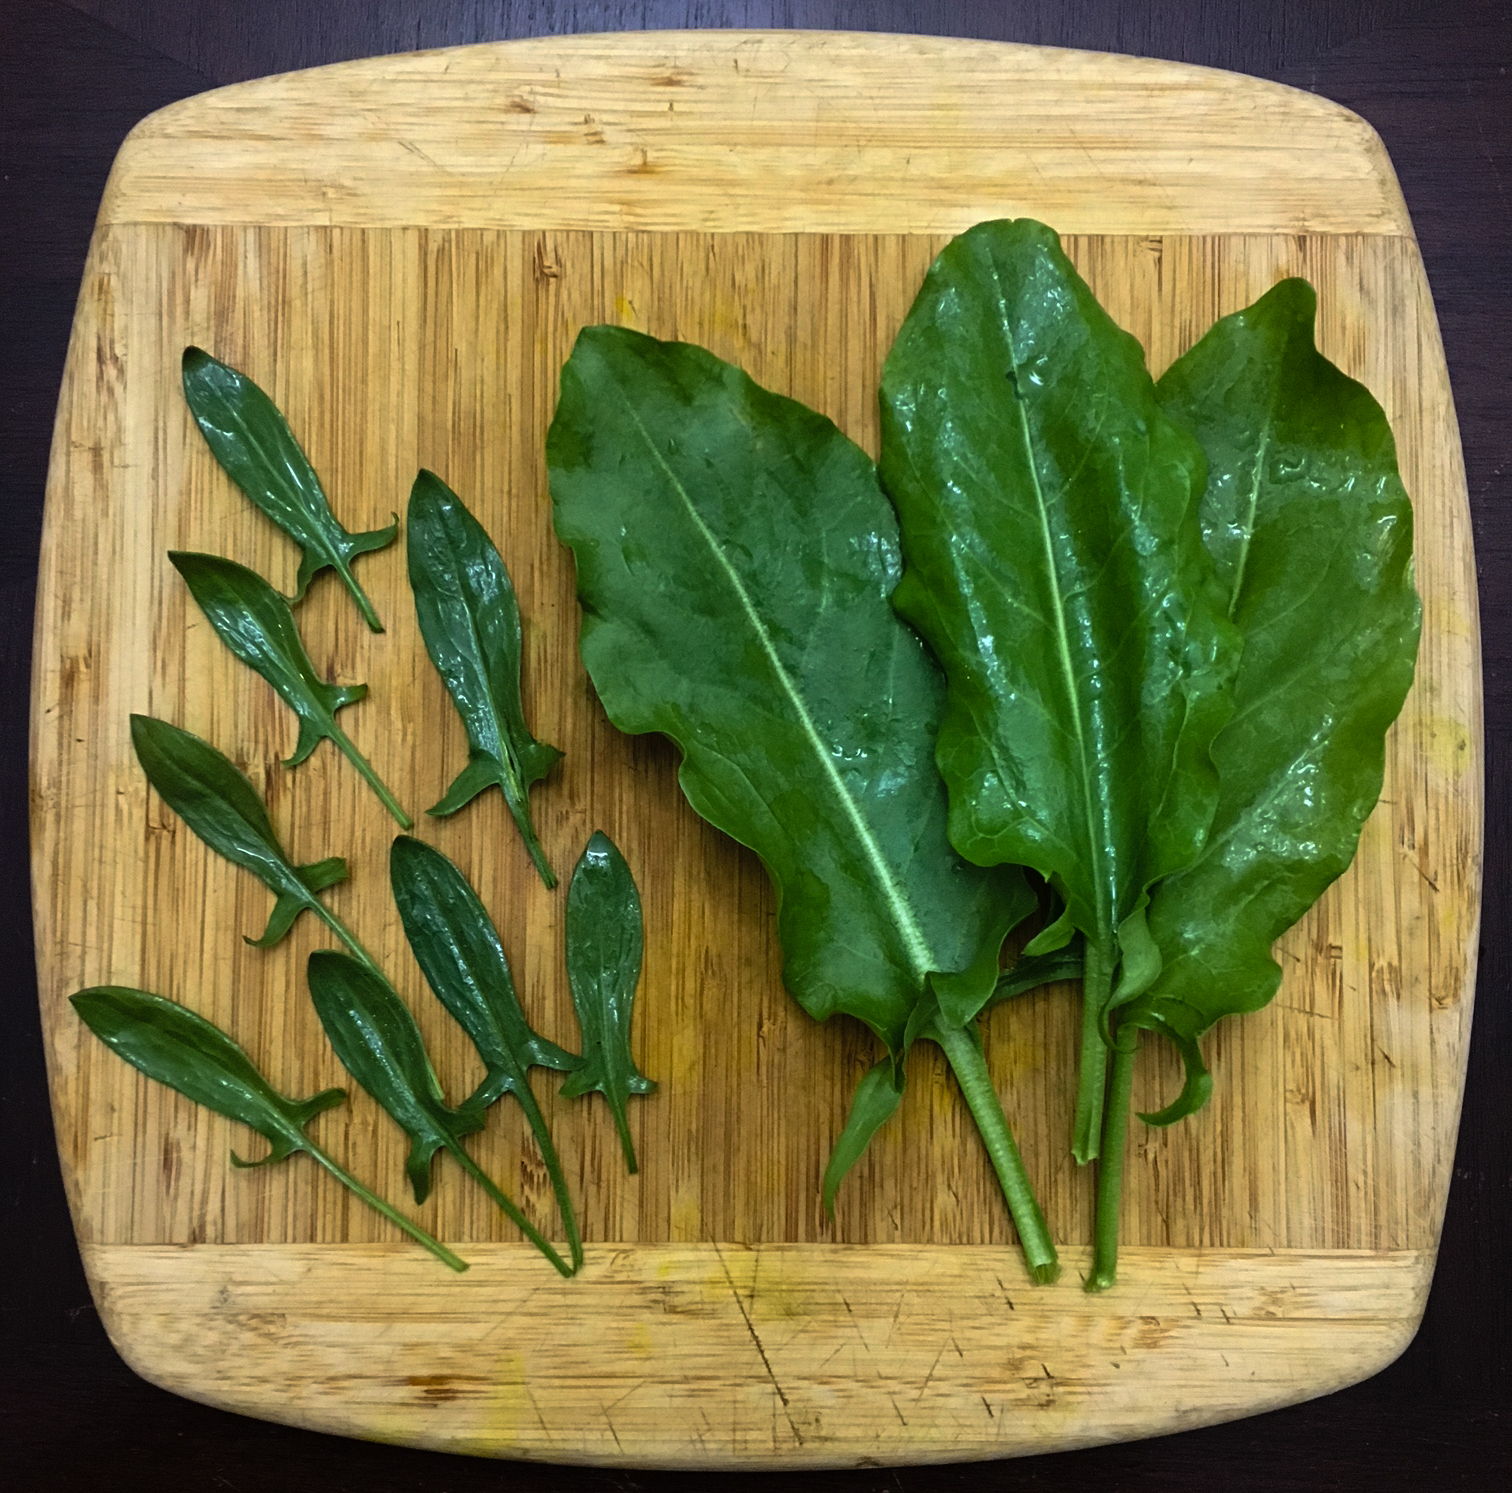 Sheep's sorrel (left) and garden sorrel (right) on cutting board. The leaves have the same shape, only garden sorrel has been bred to be much larger.